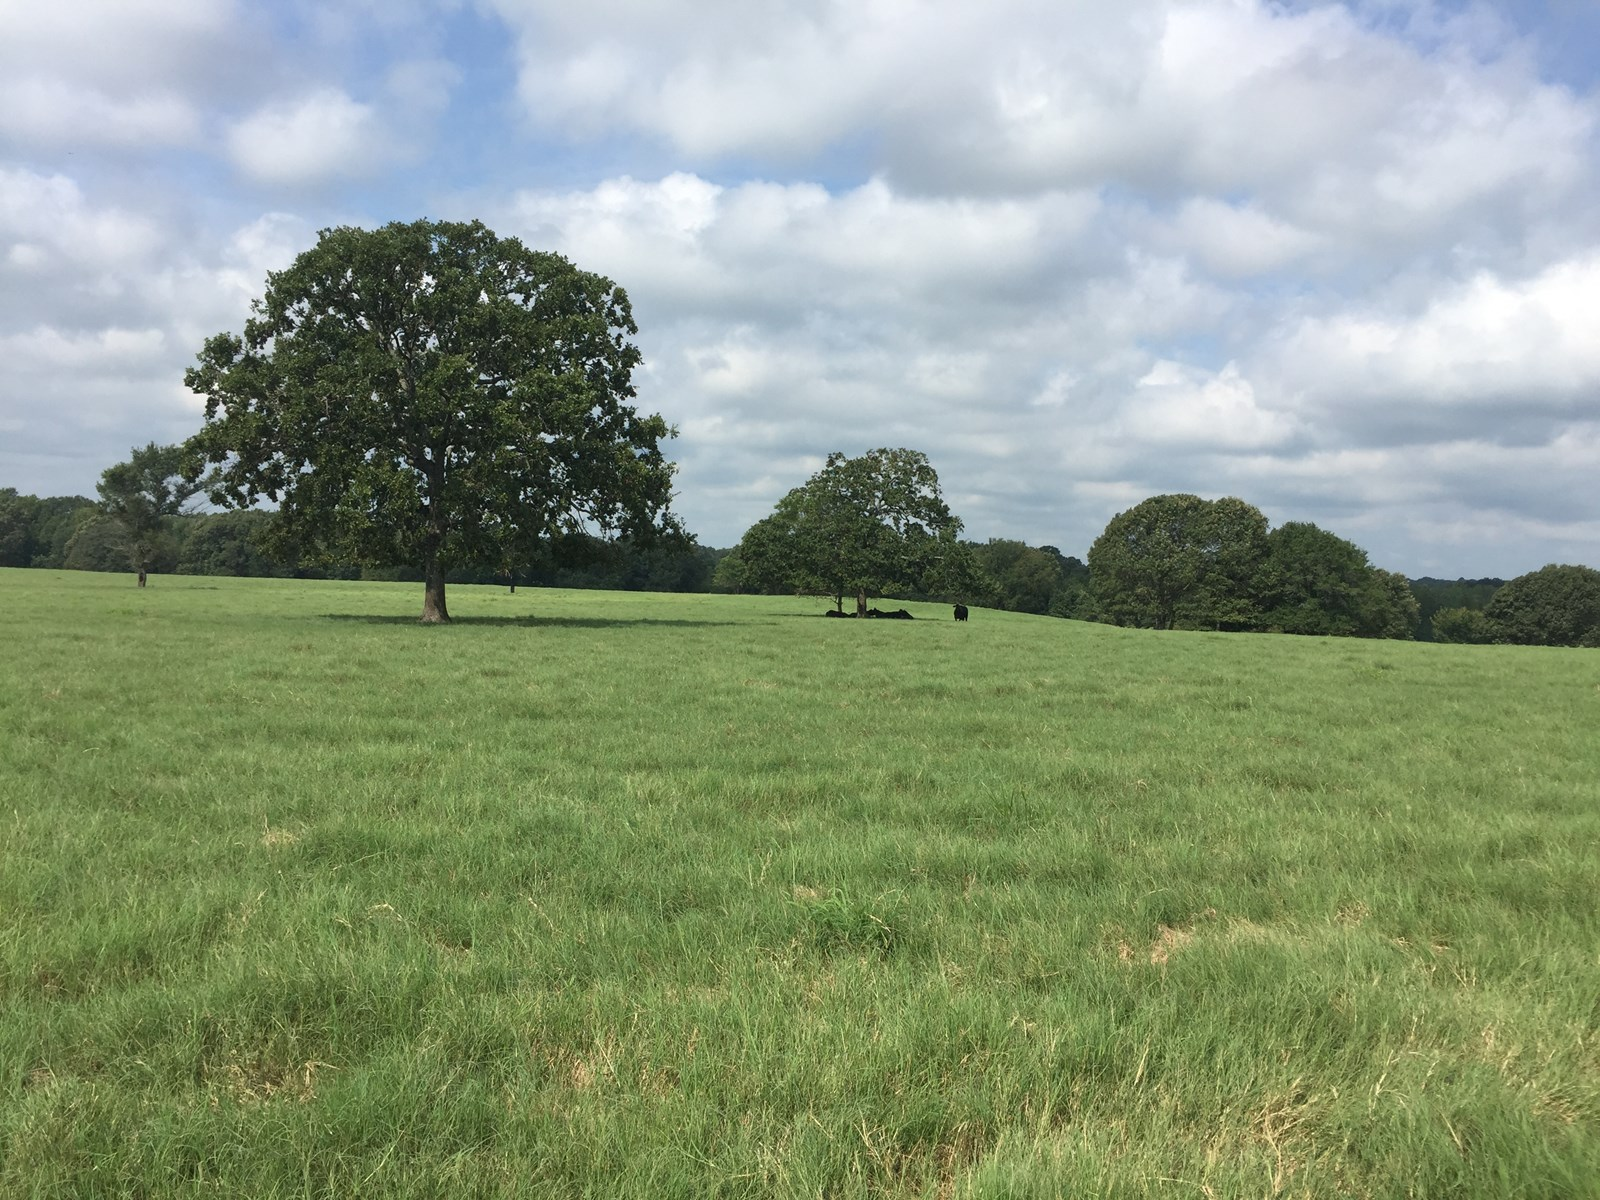 Prime East Texas Pasture Land for Sale